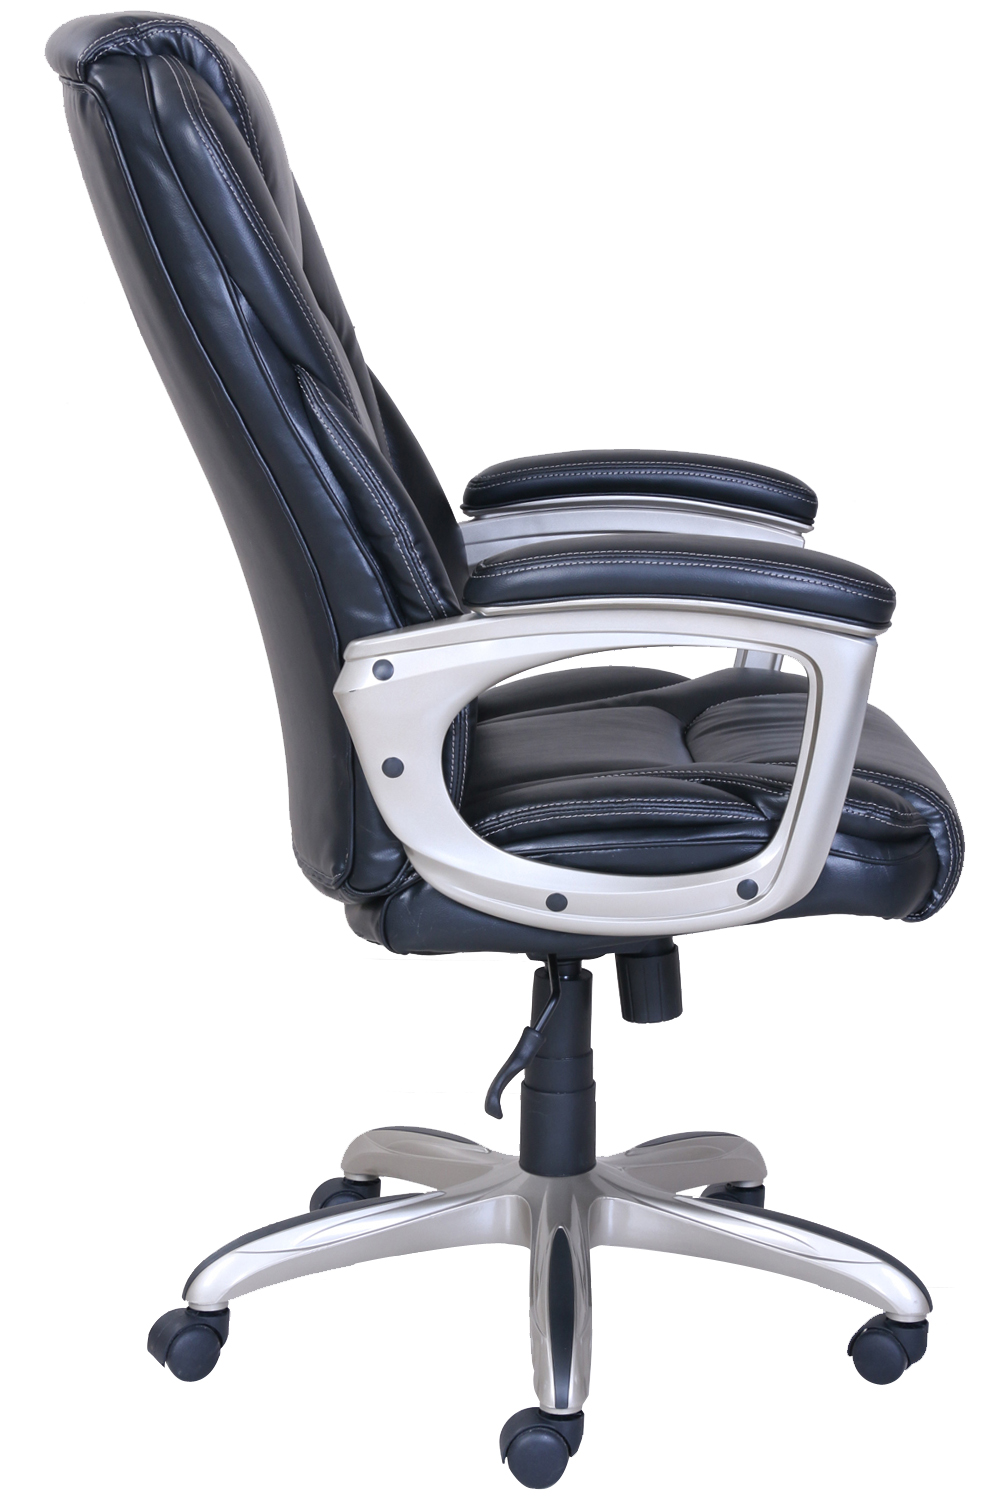 ... Picture 2 Of 3; Picture 3 Of 3. Serta Big U0026 Tall Commercial Office Chair  ...